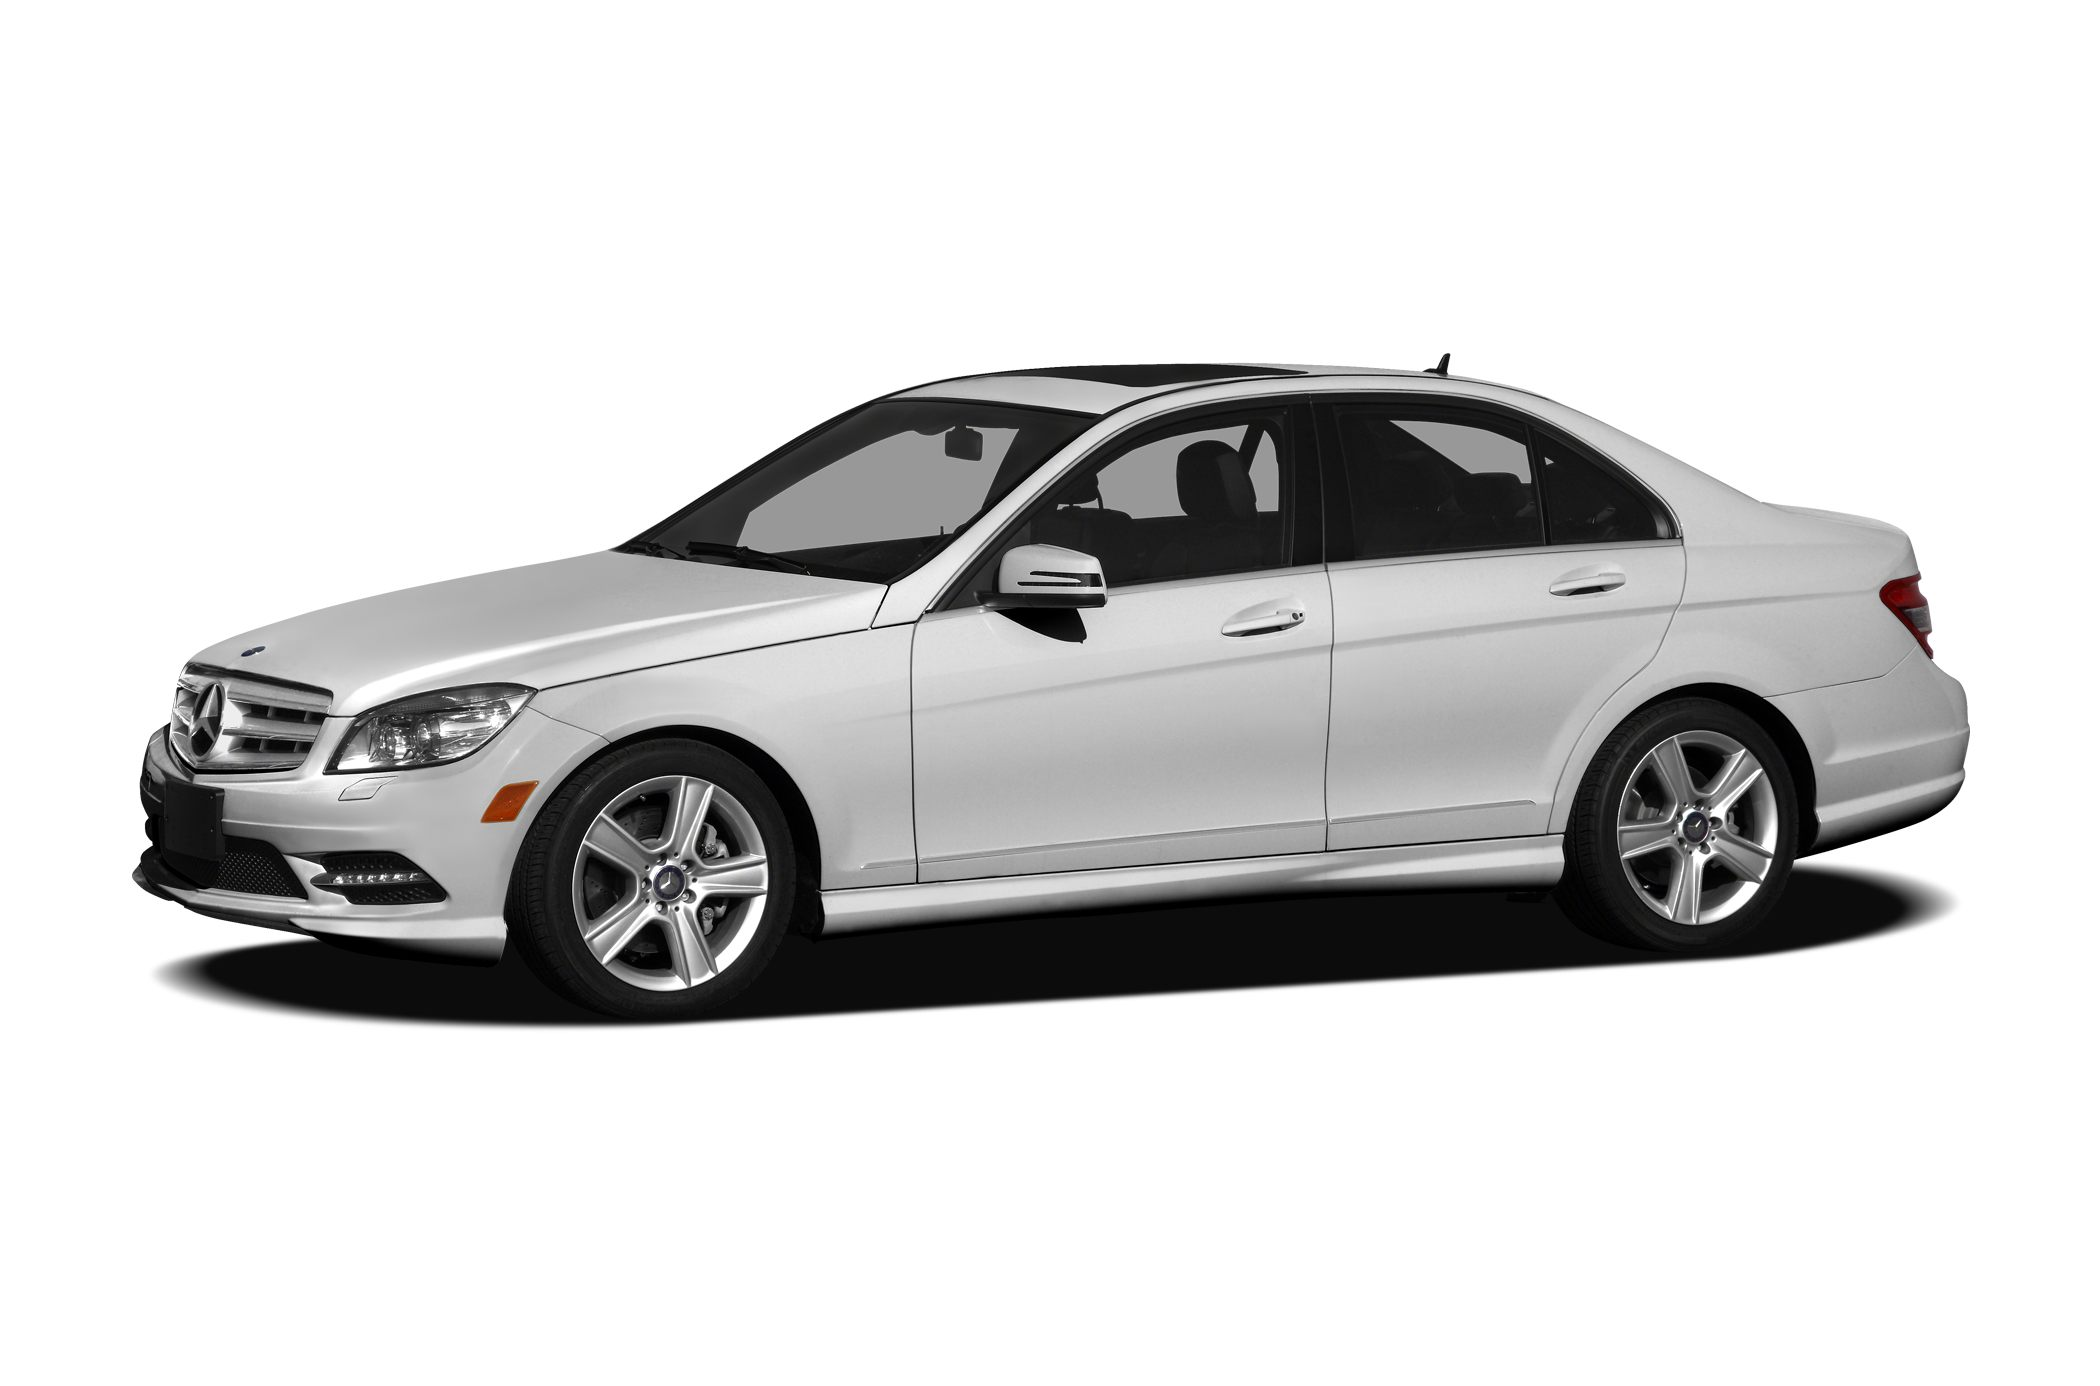 2011 Mercedes-Benz C-Class C300 Sedan for sale in Albuquerque for $22,950 with 46,470 miles